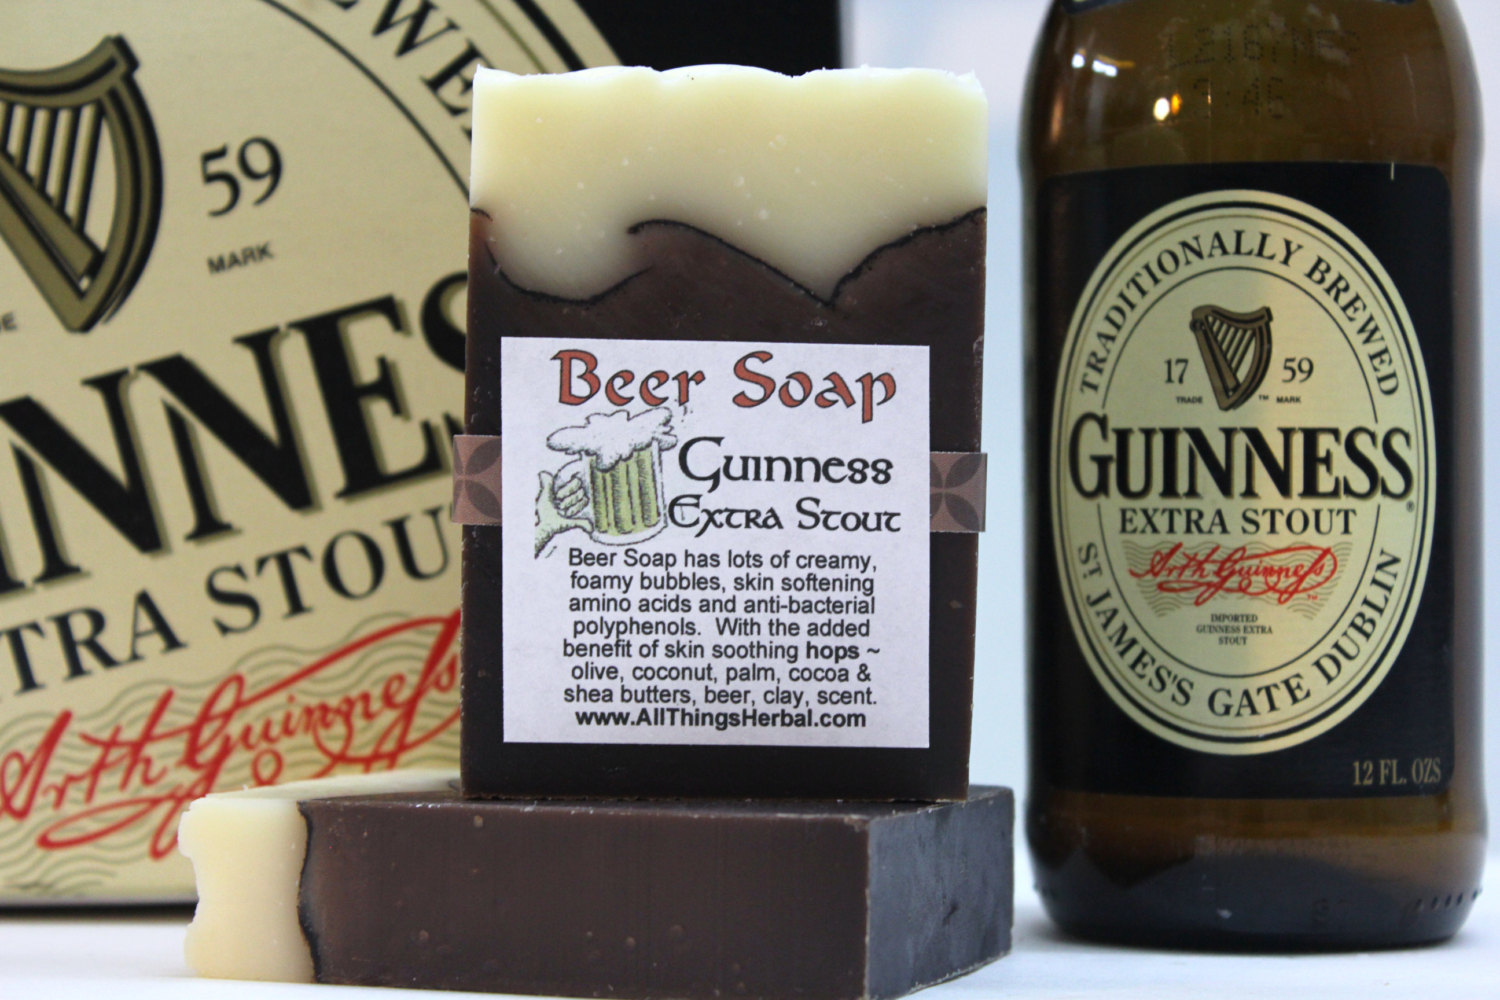 Beer Soap - Guinness to get you into a beer lather!